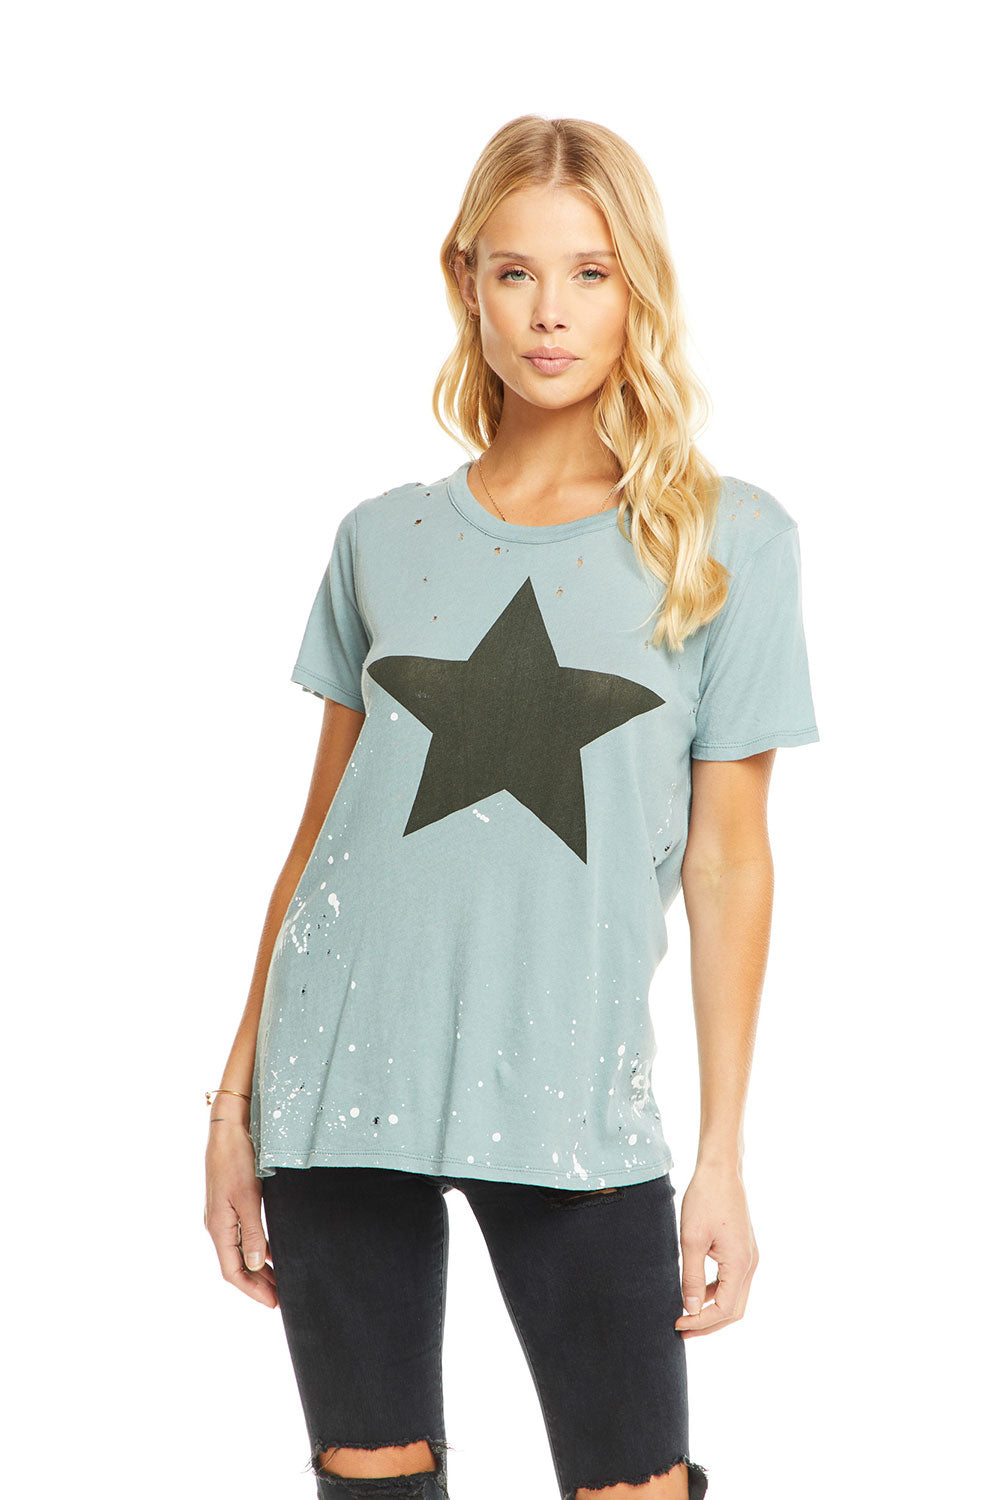 701ea665d0 Lone Star, WOMENS, chaserbrand.com,chaser clothing,chaser apparel,chaser